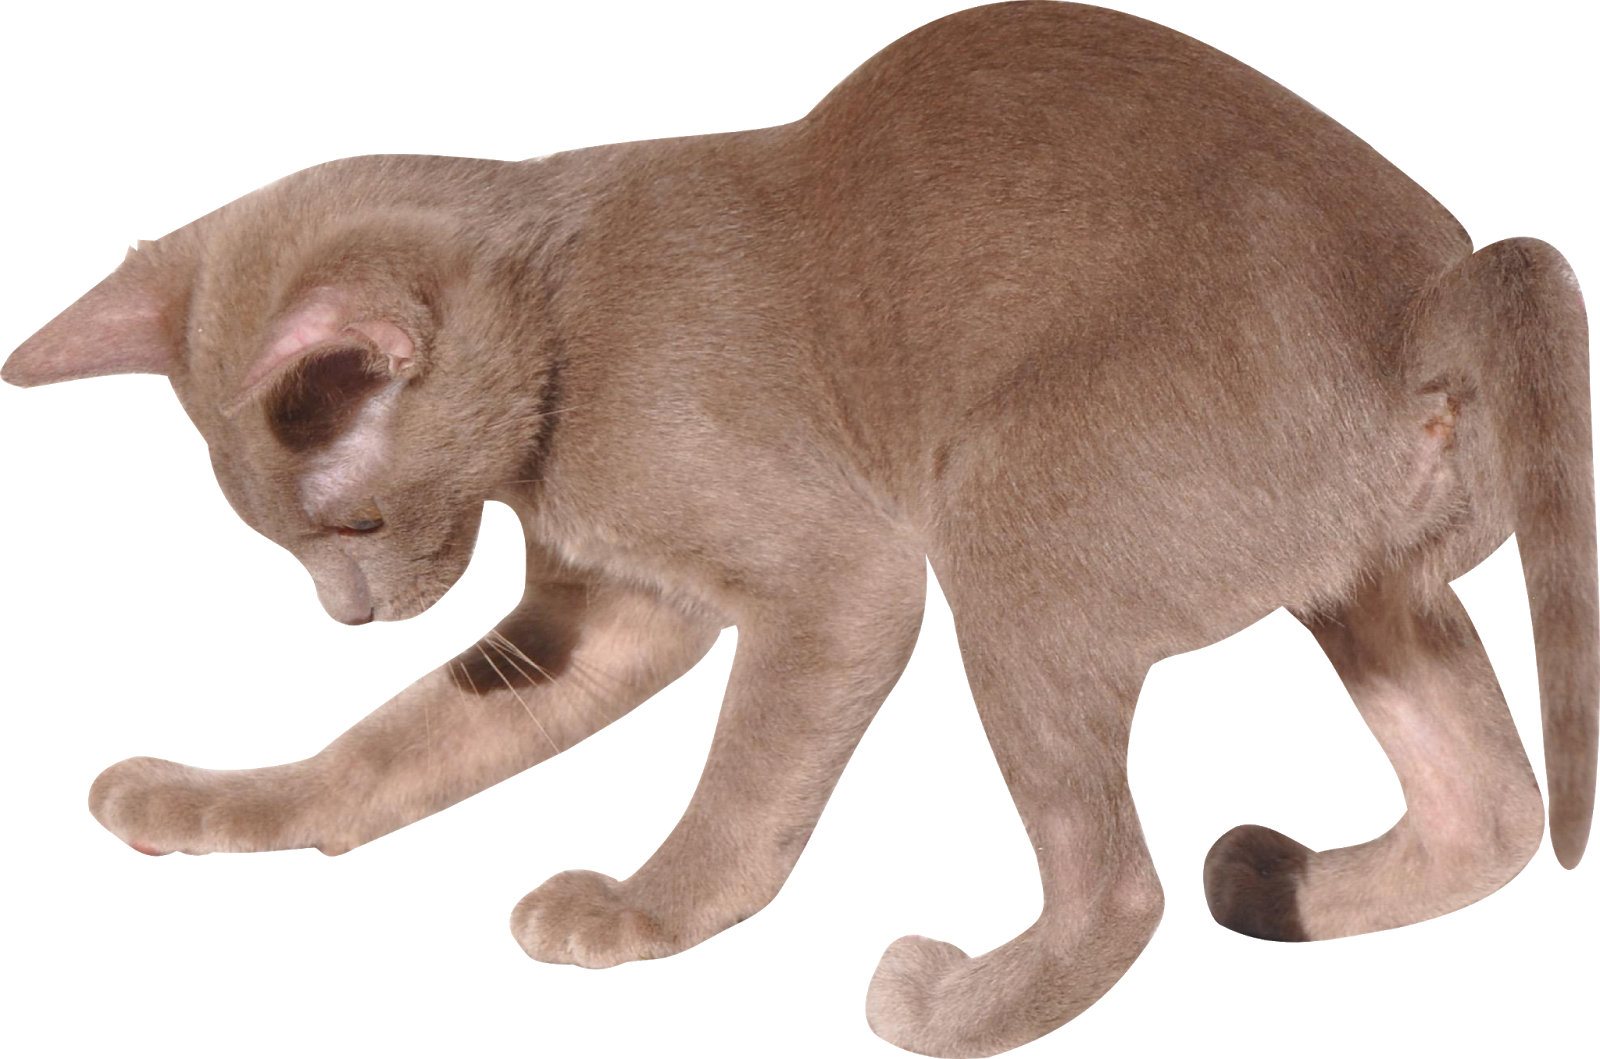 Kittens clipart row. Free cat images digital